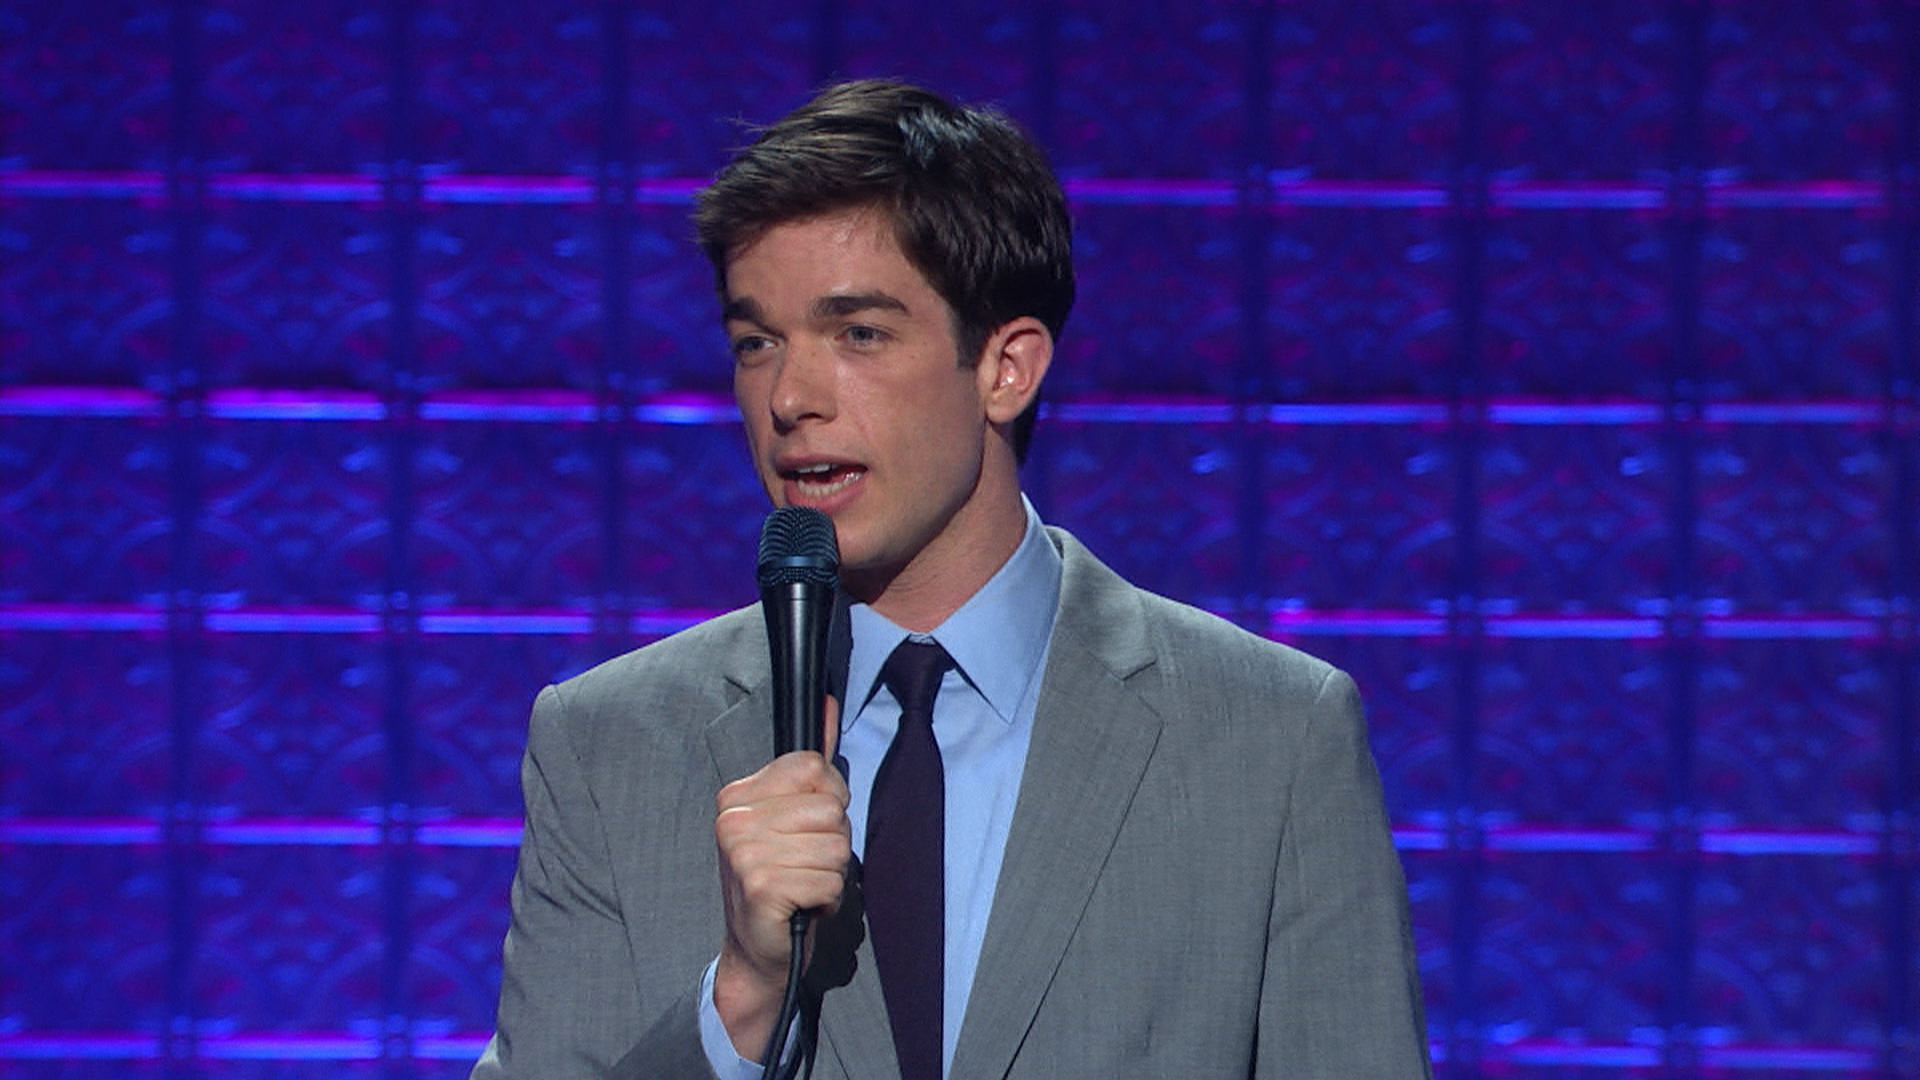 John Mulaney - Antique Photographs